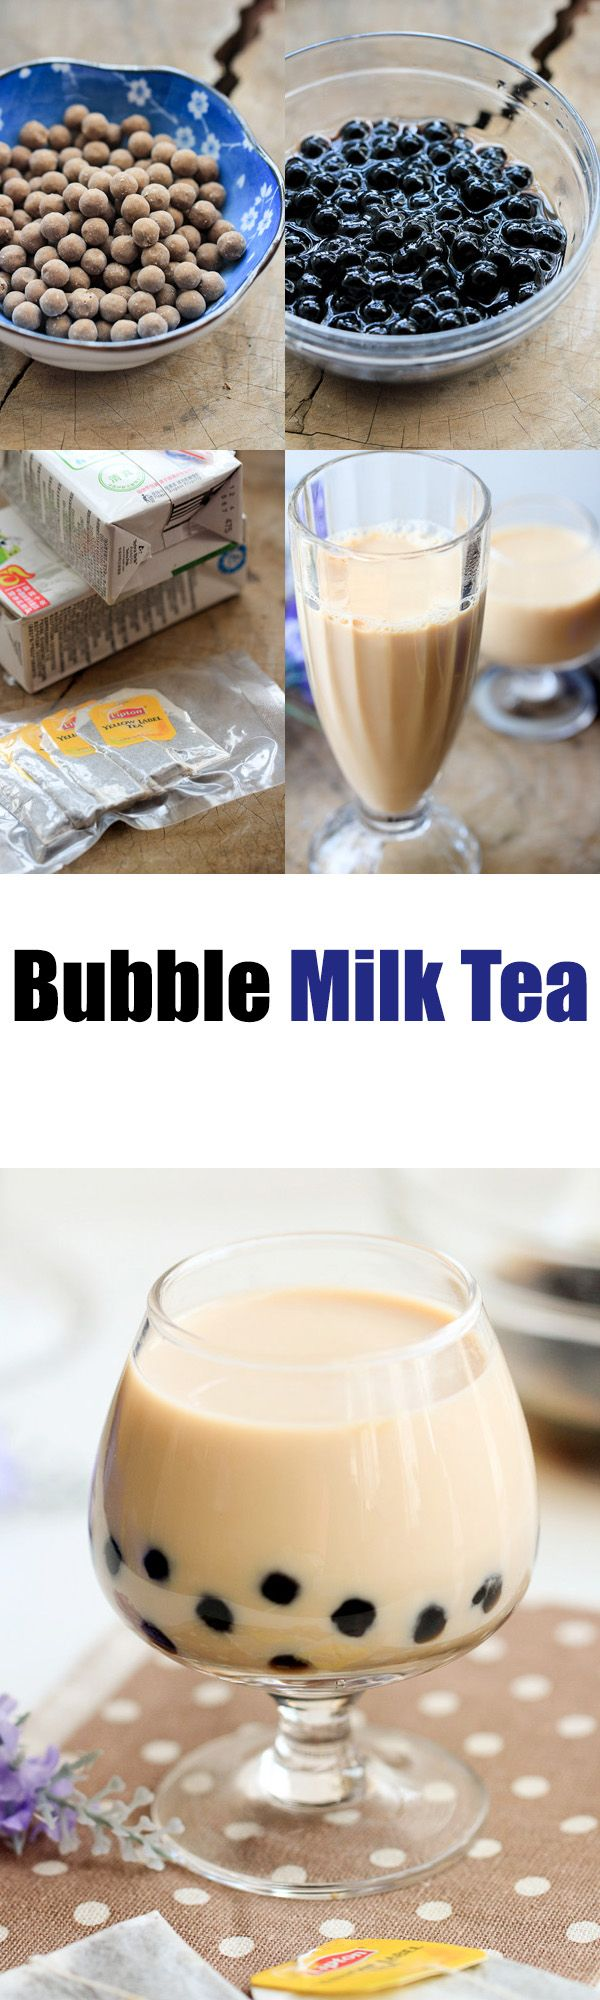 Bubble milk #tea #Chinese